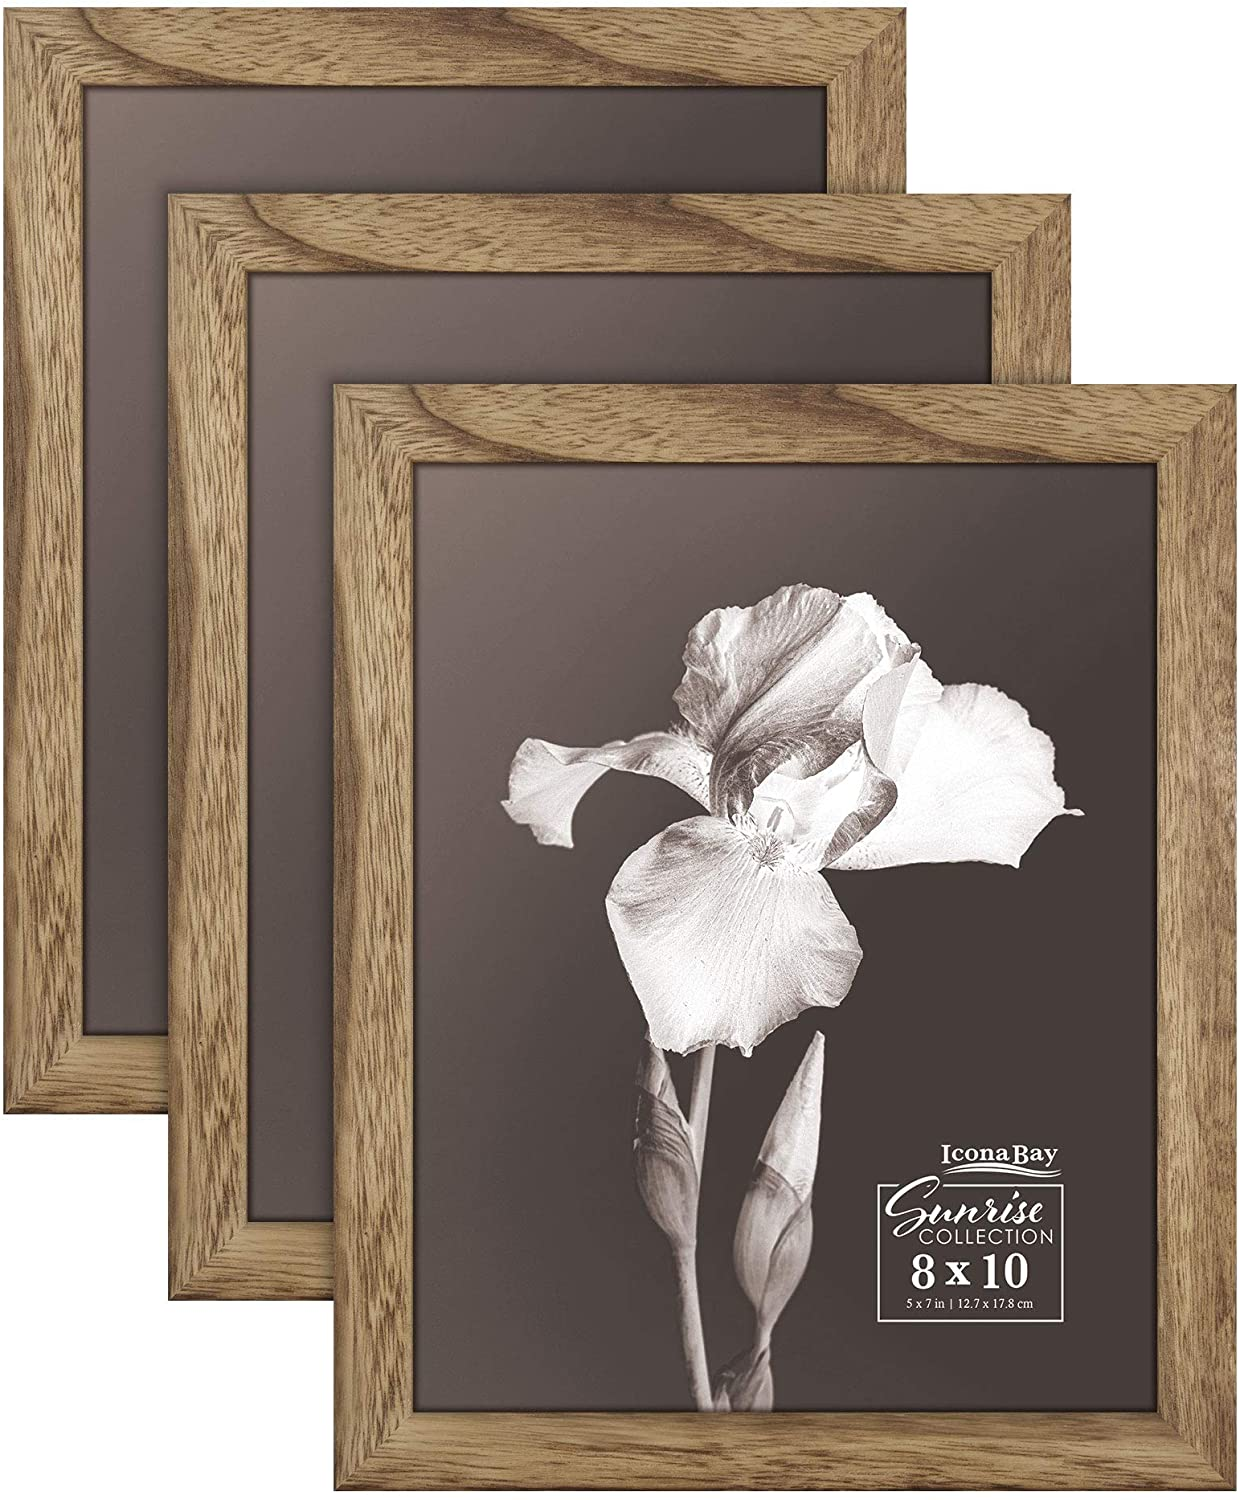 Icona Bay 8x10 Picture Frames (Walnut Brown, 3 Pack) Solid Wood, Modern Farmhouse Set, Sunrise Collection